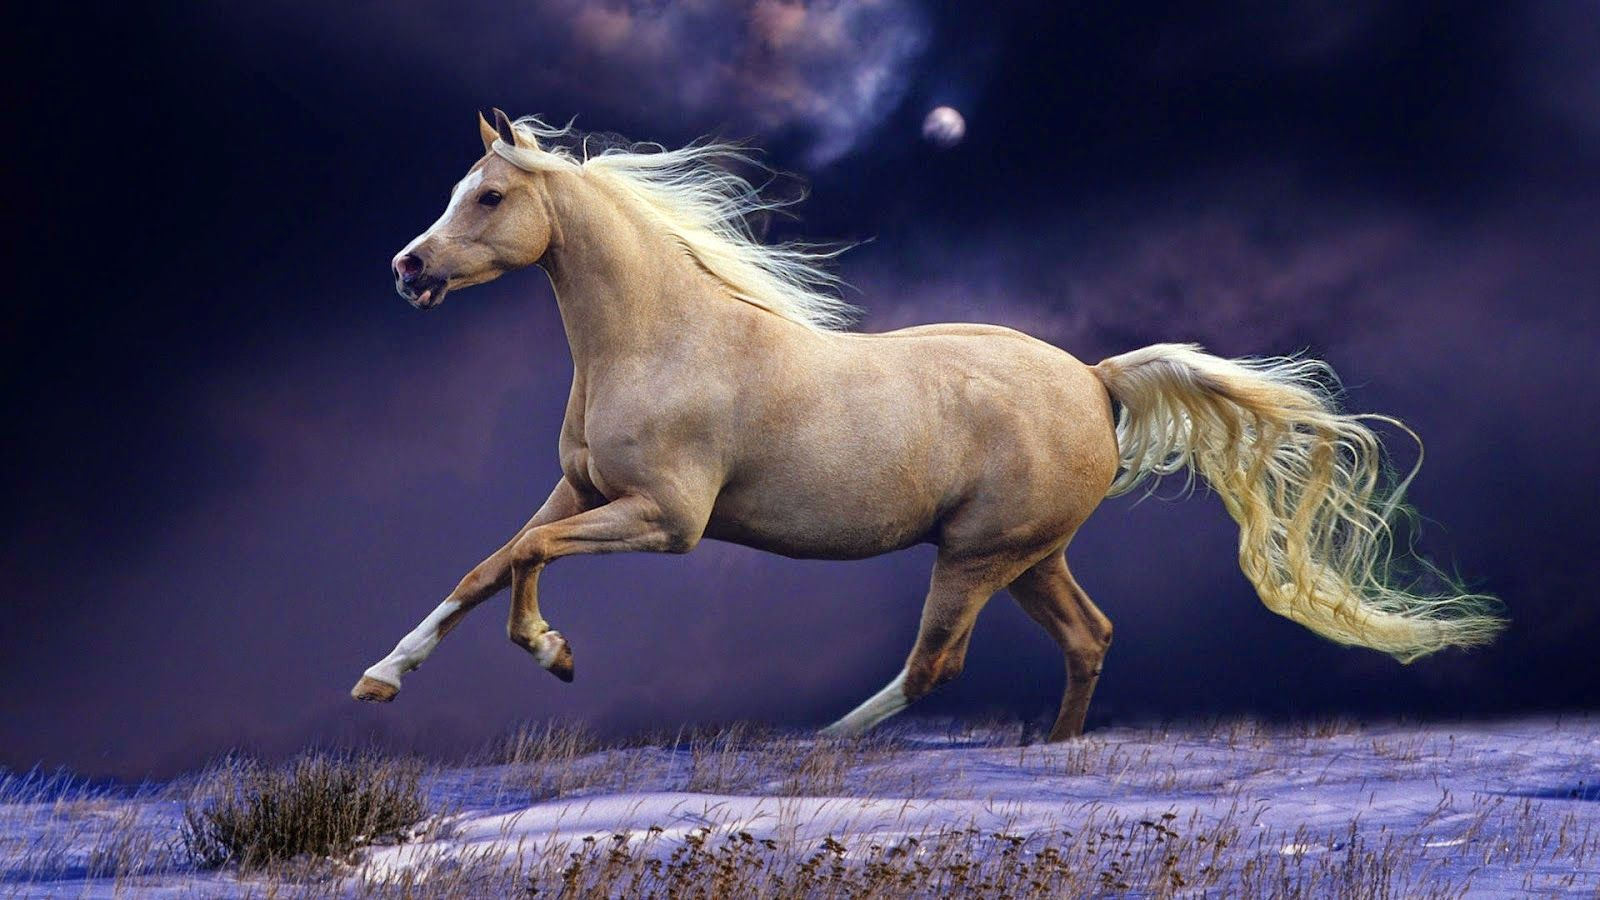 Red Horse Wallpaper Widescreen Hd Free Download Horse Beautiful Horse 1893438 Hd Wallpaper Backgrounds Download